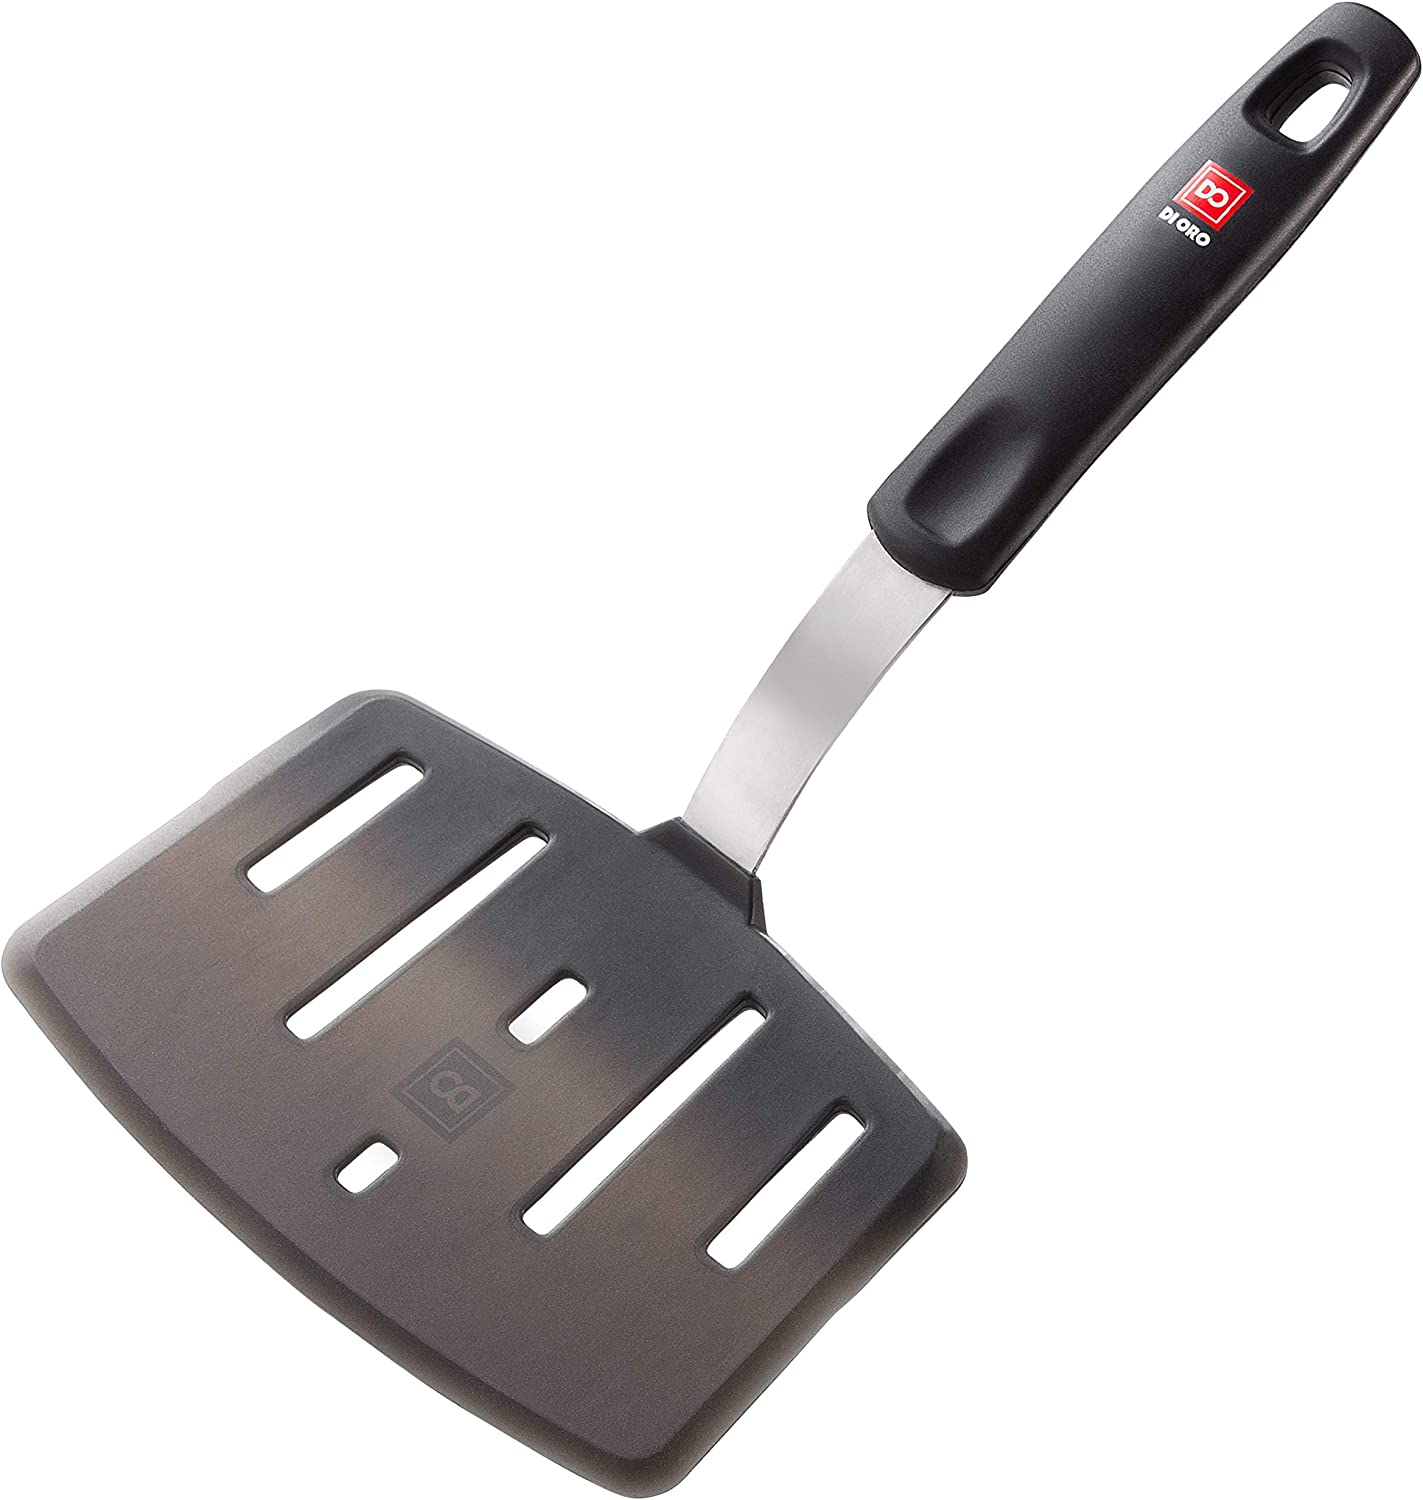 All-New DI ORO Designer Series Wide Slotted Turner Spatula - Features 600F Heat-Resistant No-Melt Rubber Spatula Handle and Blade - Silicone Kitchen Spatula for Cooking or Baking - Dishwasher Safe